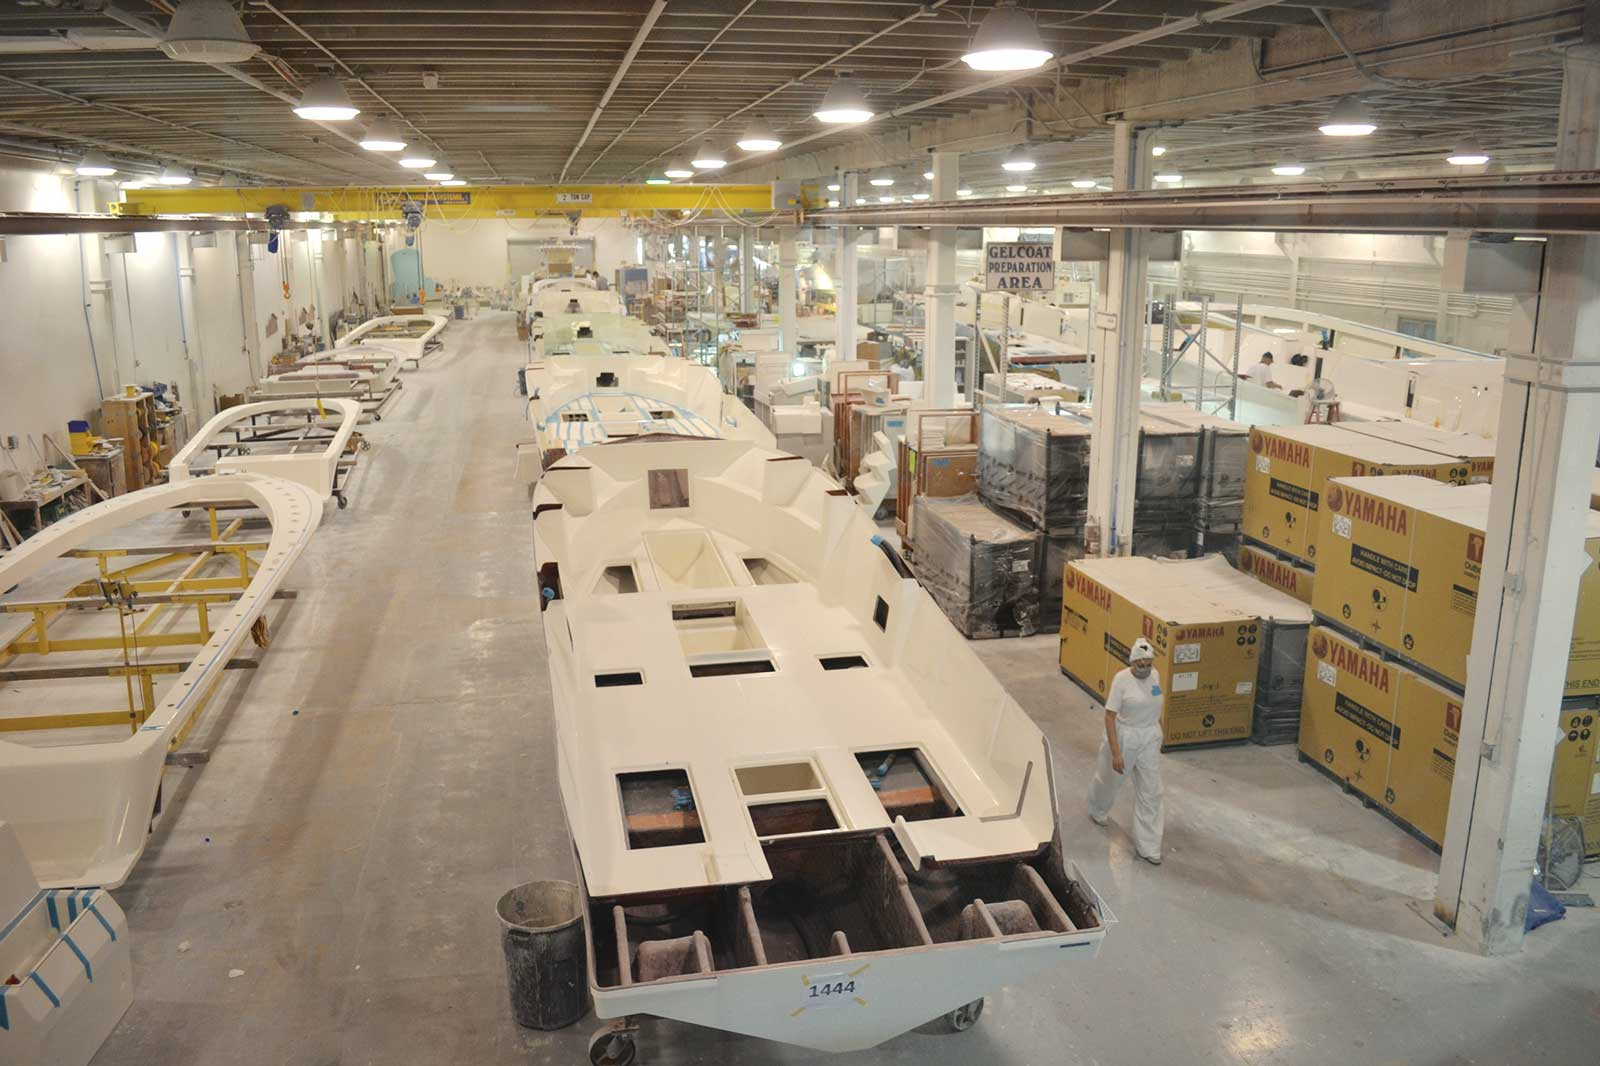 SeaVee Boats preparing to double manufacturing space